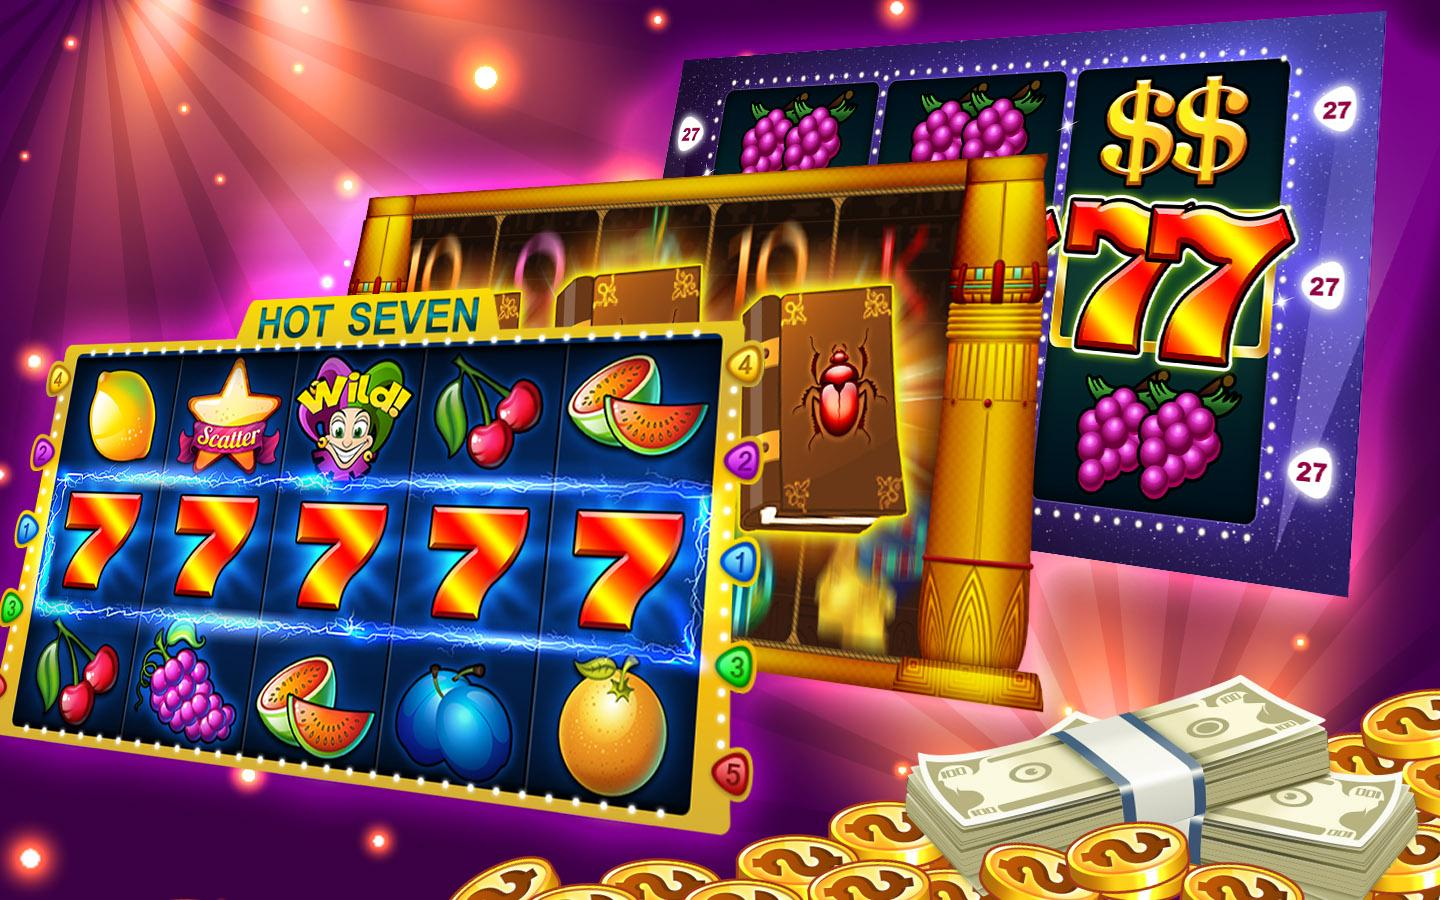 True Love Slot Machine - Win Big Playing Online Casino Games